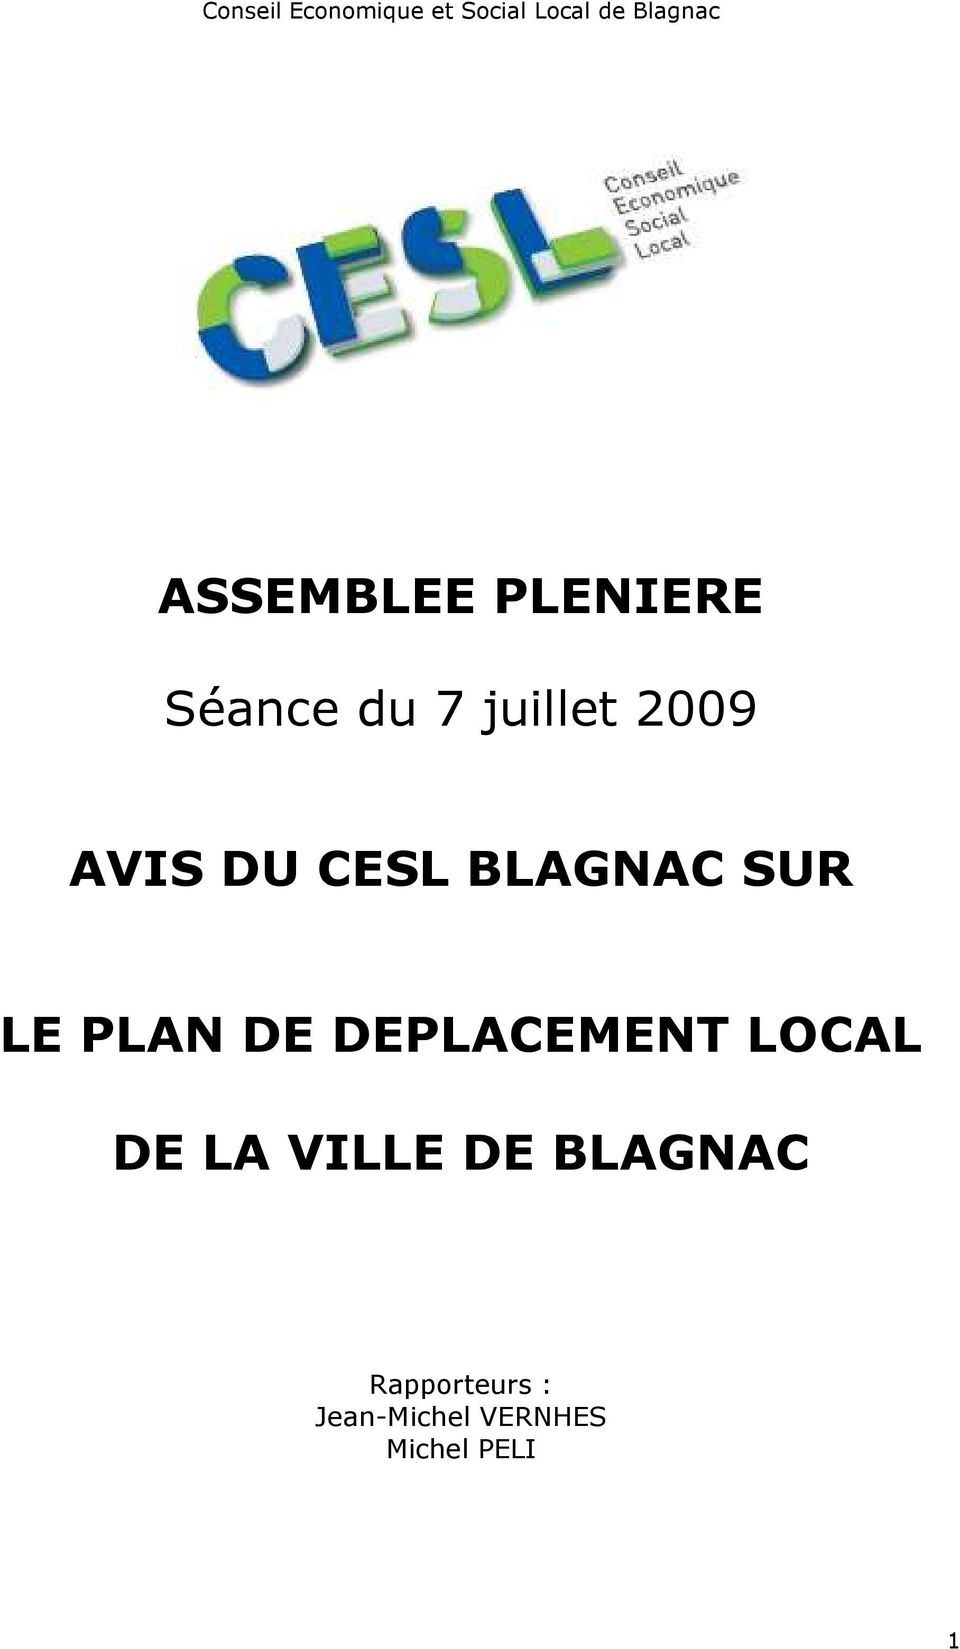 CESL BLAGNAC SUR LE PLAN DE DEPLACEMENT LOCAL DE LA